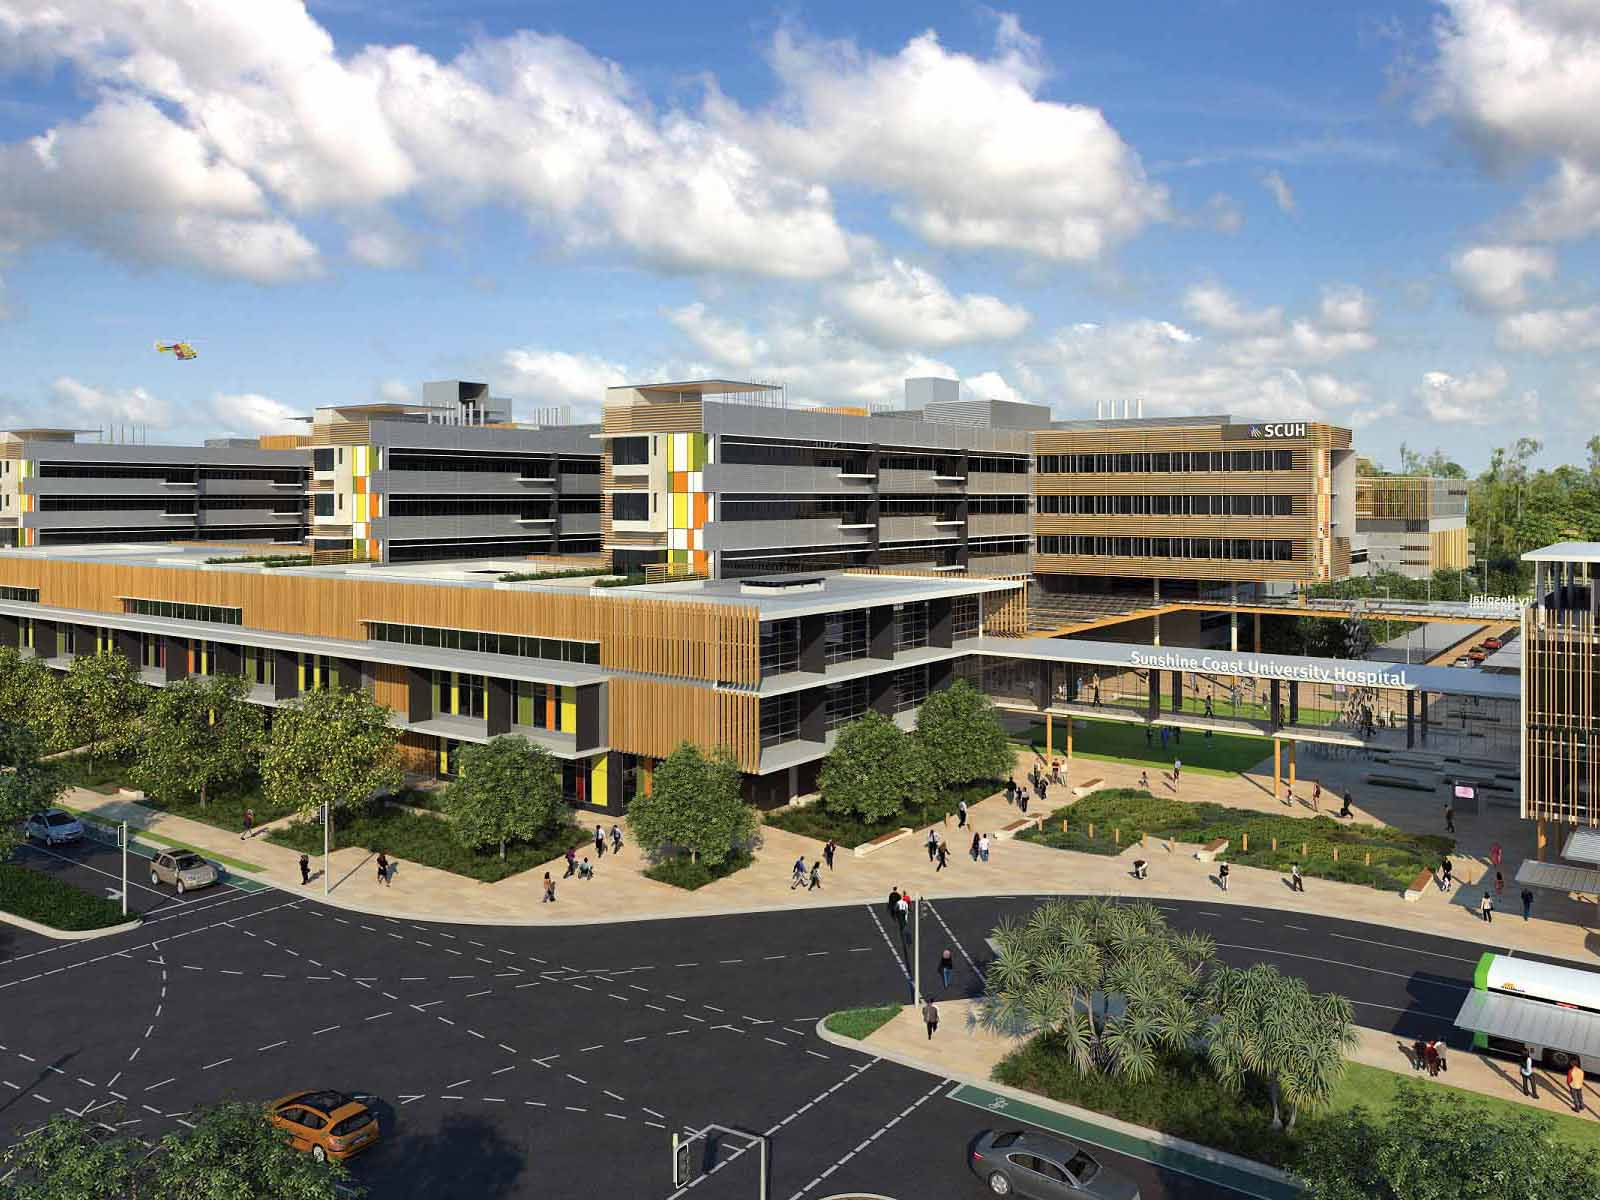 The Queensland Government's $1.8 billion Sunshine Coast University Hospital (SCUH) has become the largest public healthcare facility in Australia to achieve the building industry's highest honour with a 6 Star Green Star Healthcare v1 Design and As-Built rating. Image: Ochre Health